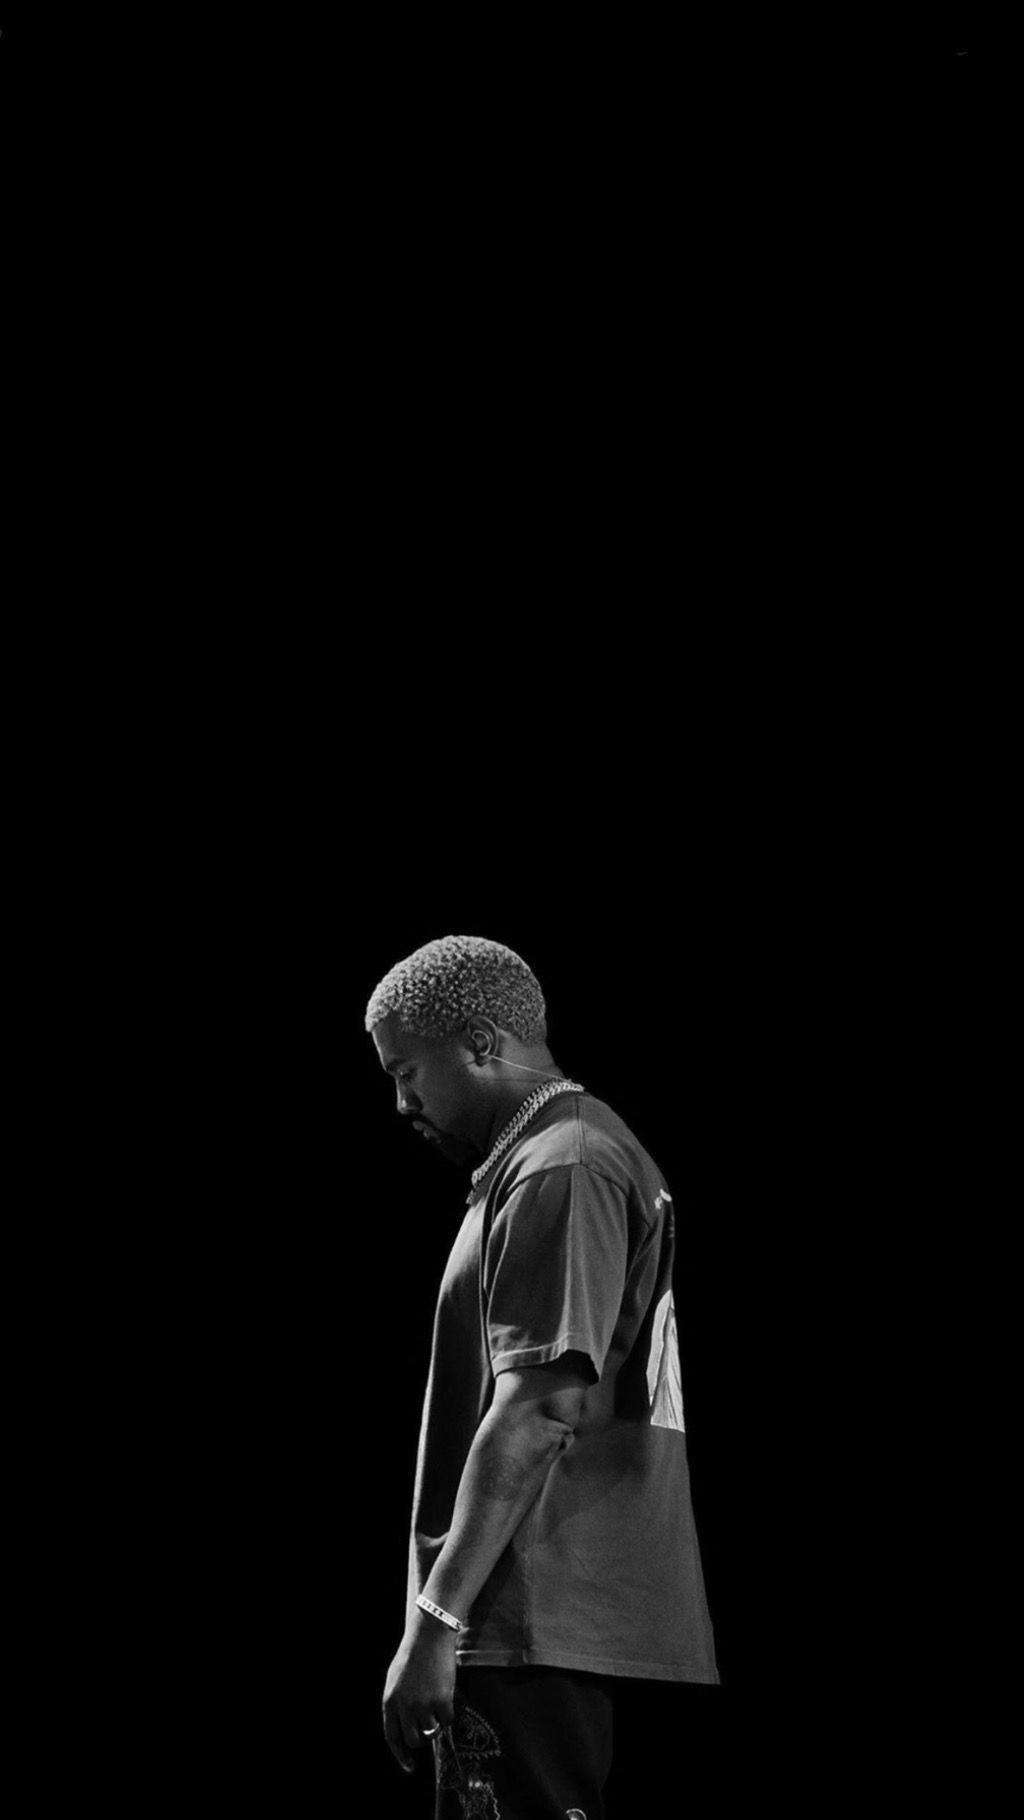 Jesus Is King Kanye West Wallpaper Kanye West Style Black And White Aesthetic